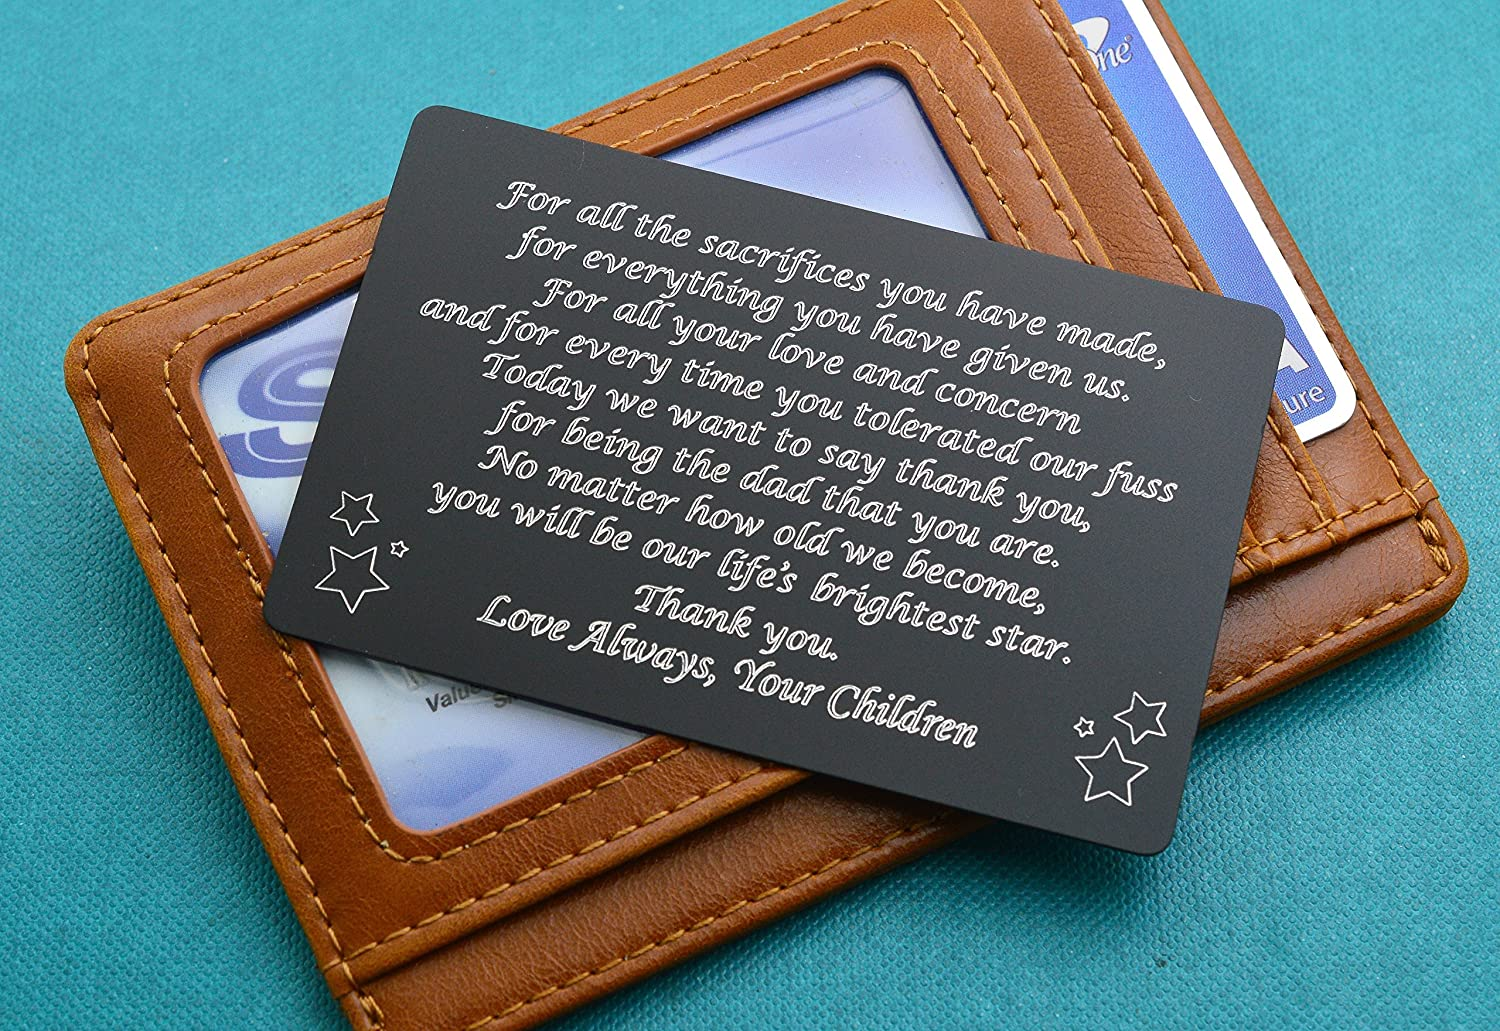 Wallet card for dad. Fathers Day Gift. Gift from children to dad. Gift for dad. Dad gift personalized